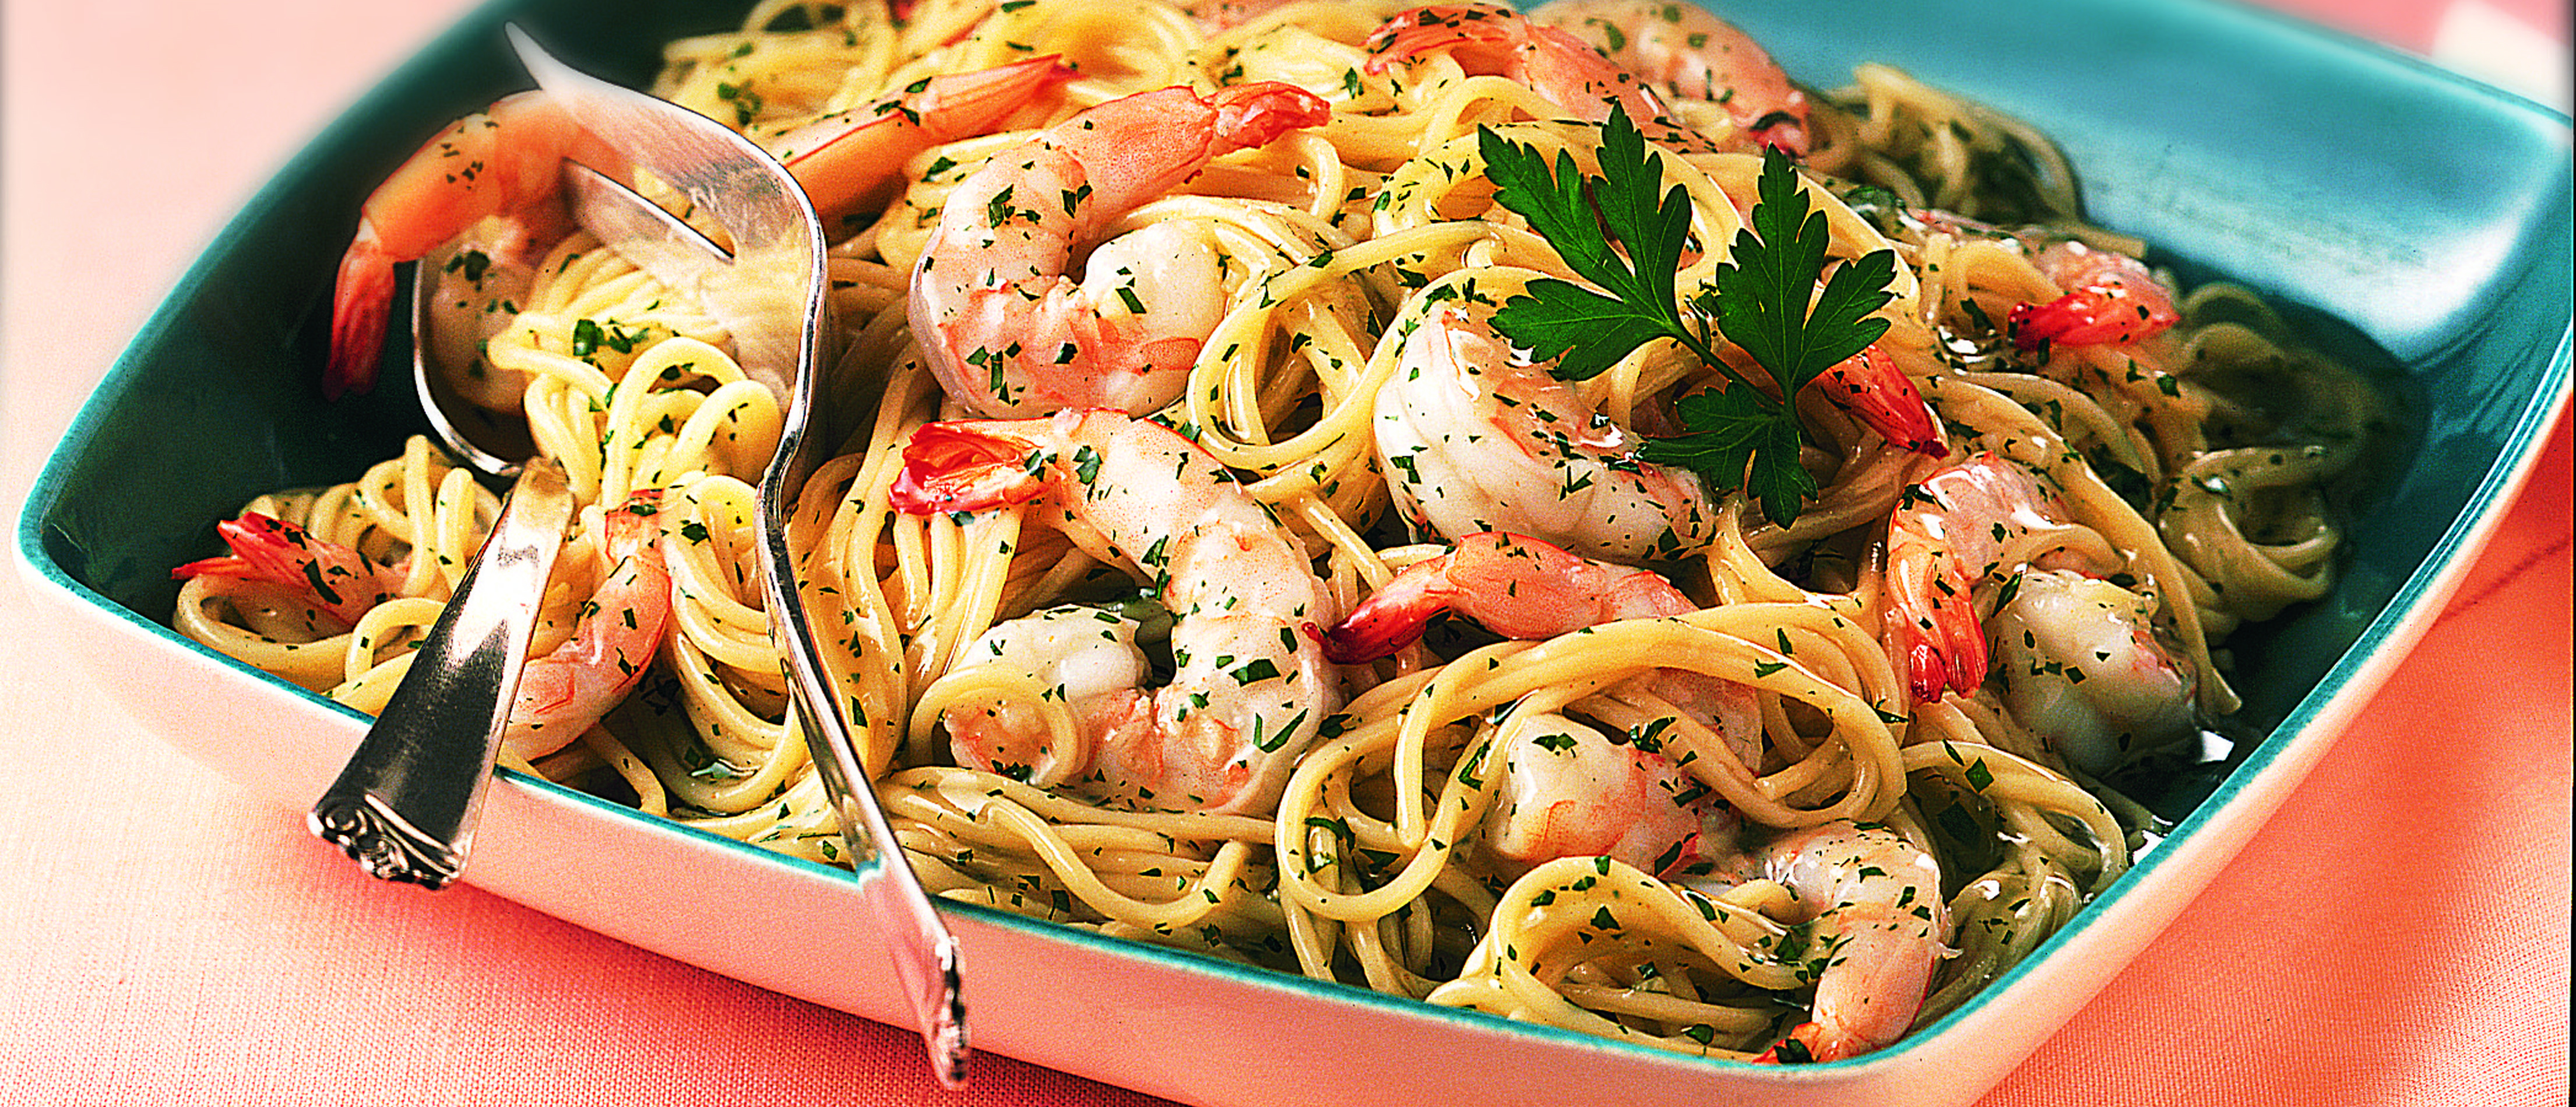 Garlic Shrimp & Pasta